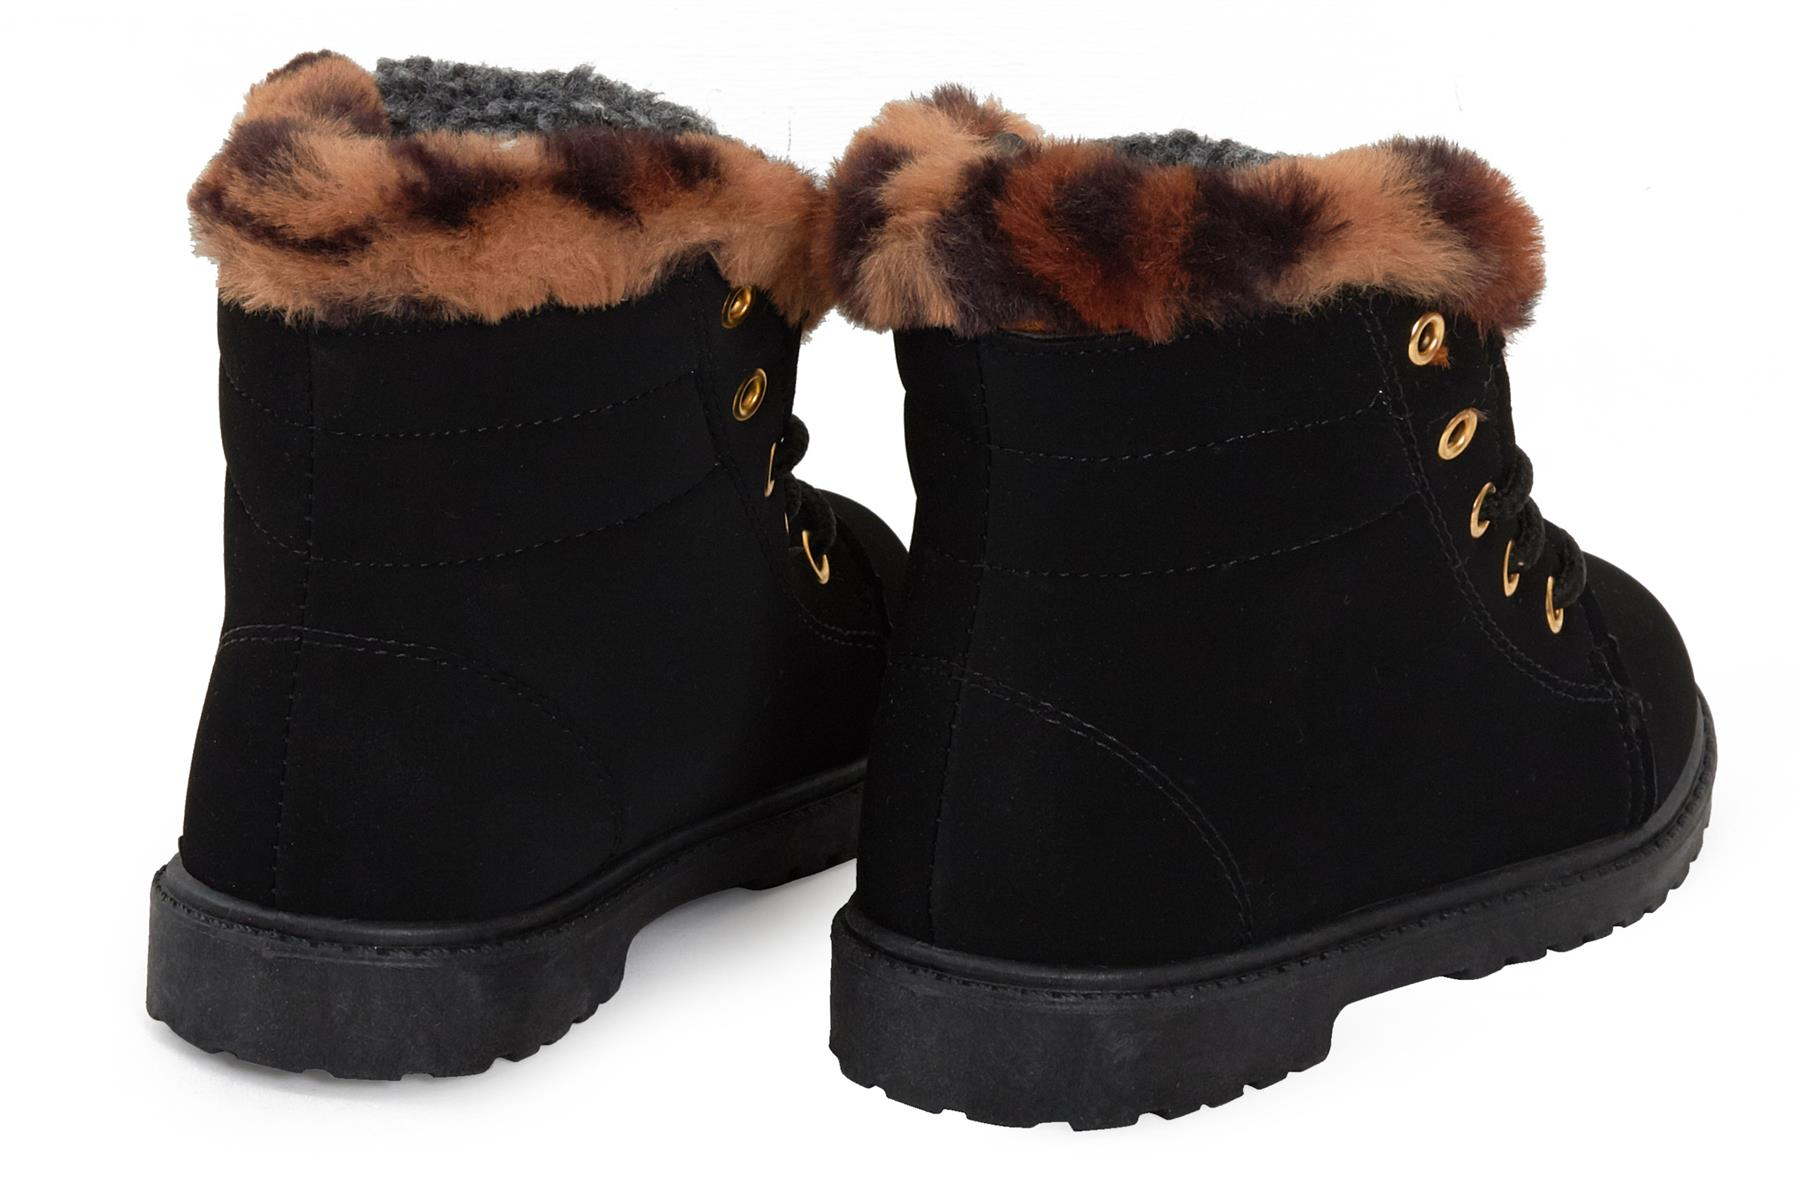 Girls Boys Girls Suede Faux Lining Winter Warm Ankle Snow Boots Outdoor  Urban Walking Clothes, Shoes & Accessories bibliotecaep.mil.pe